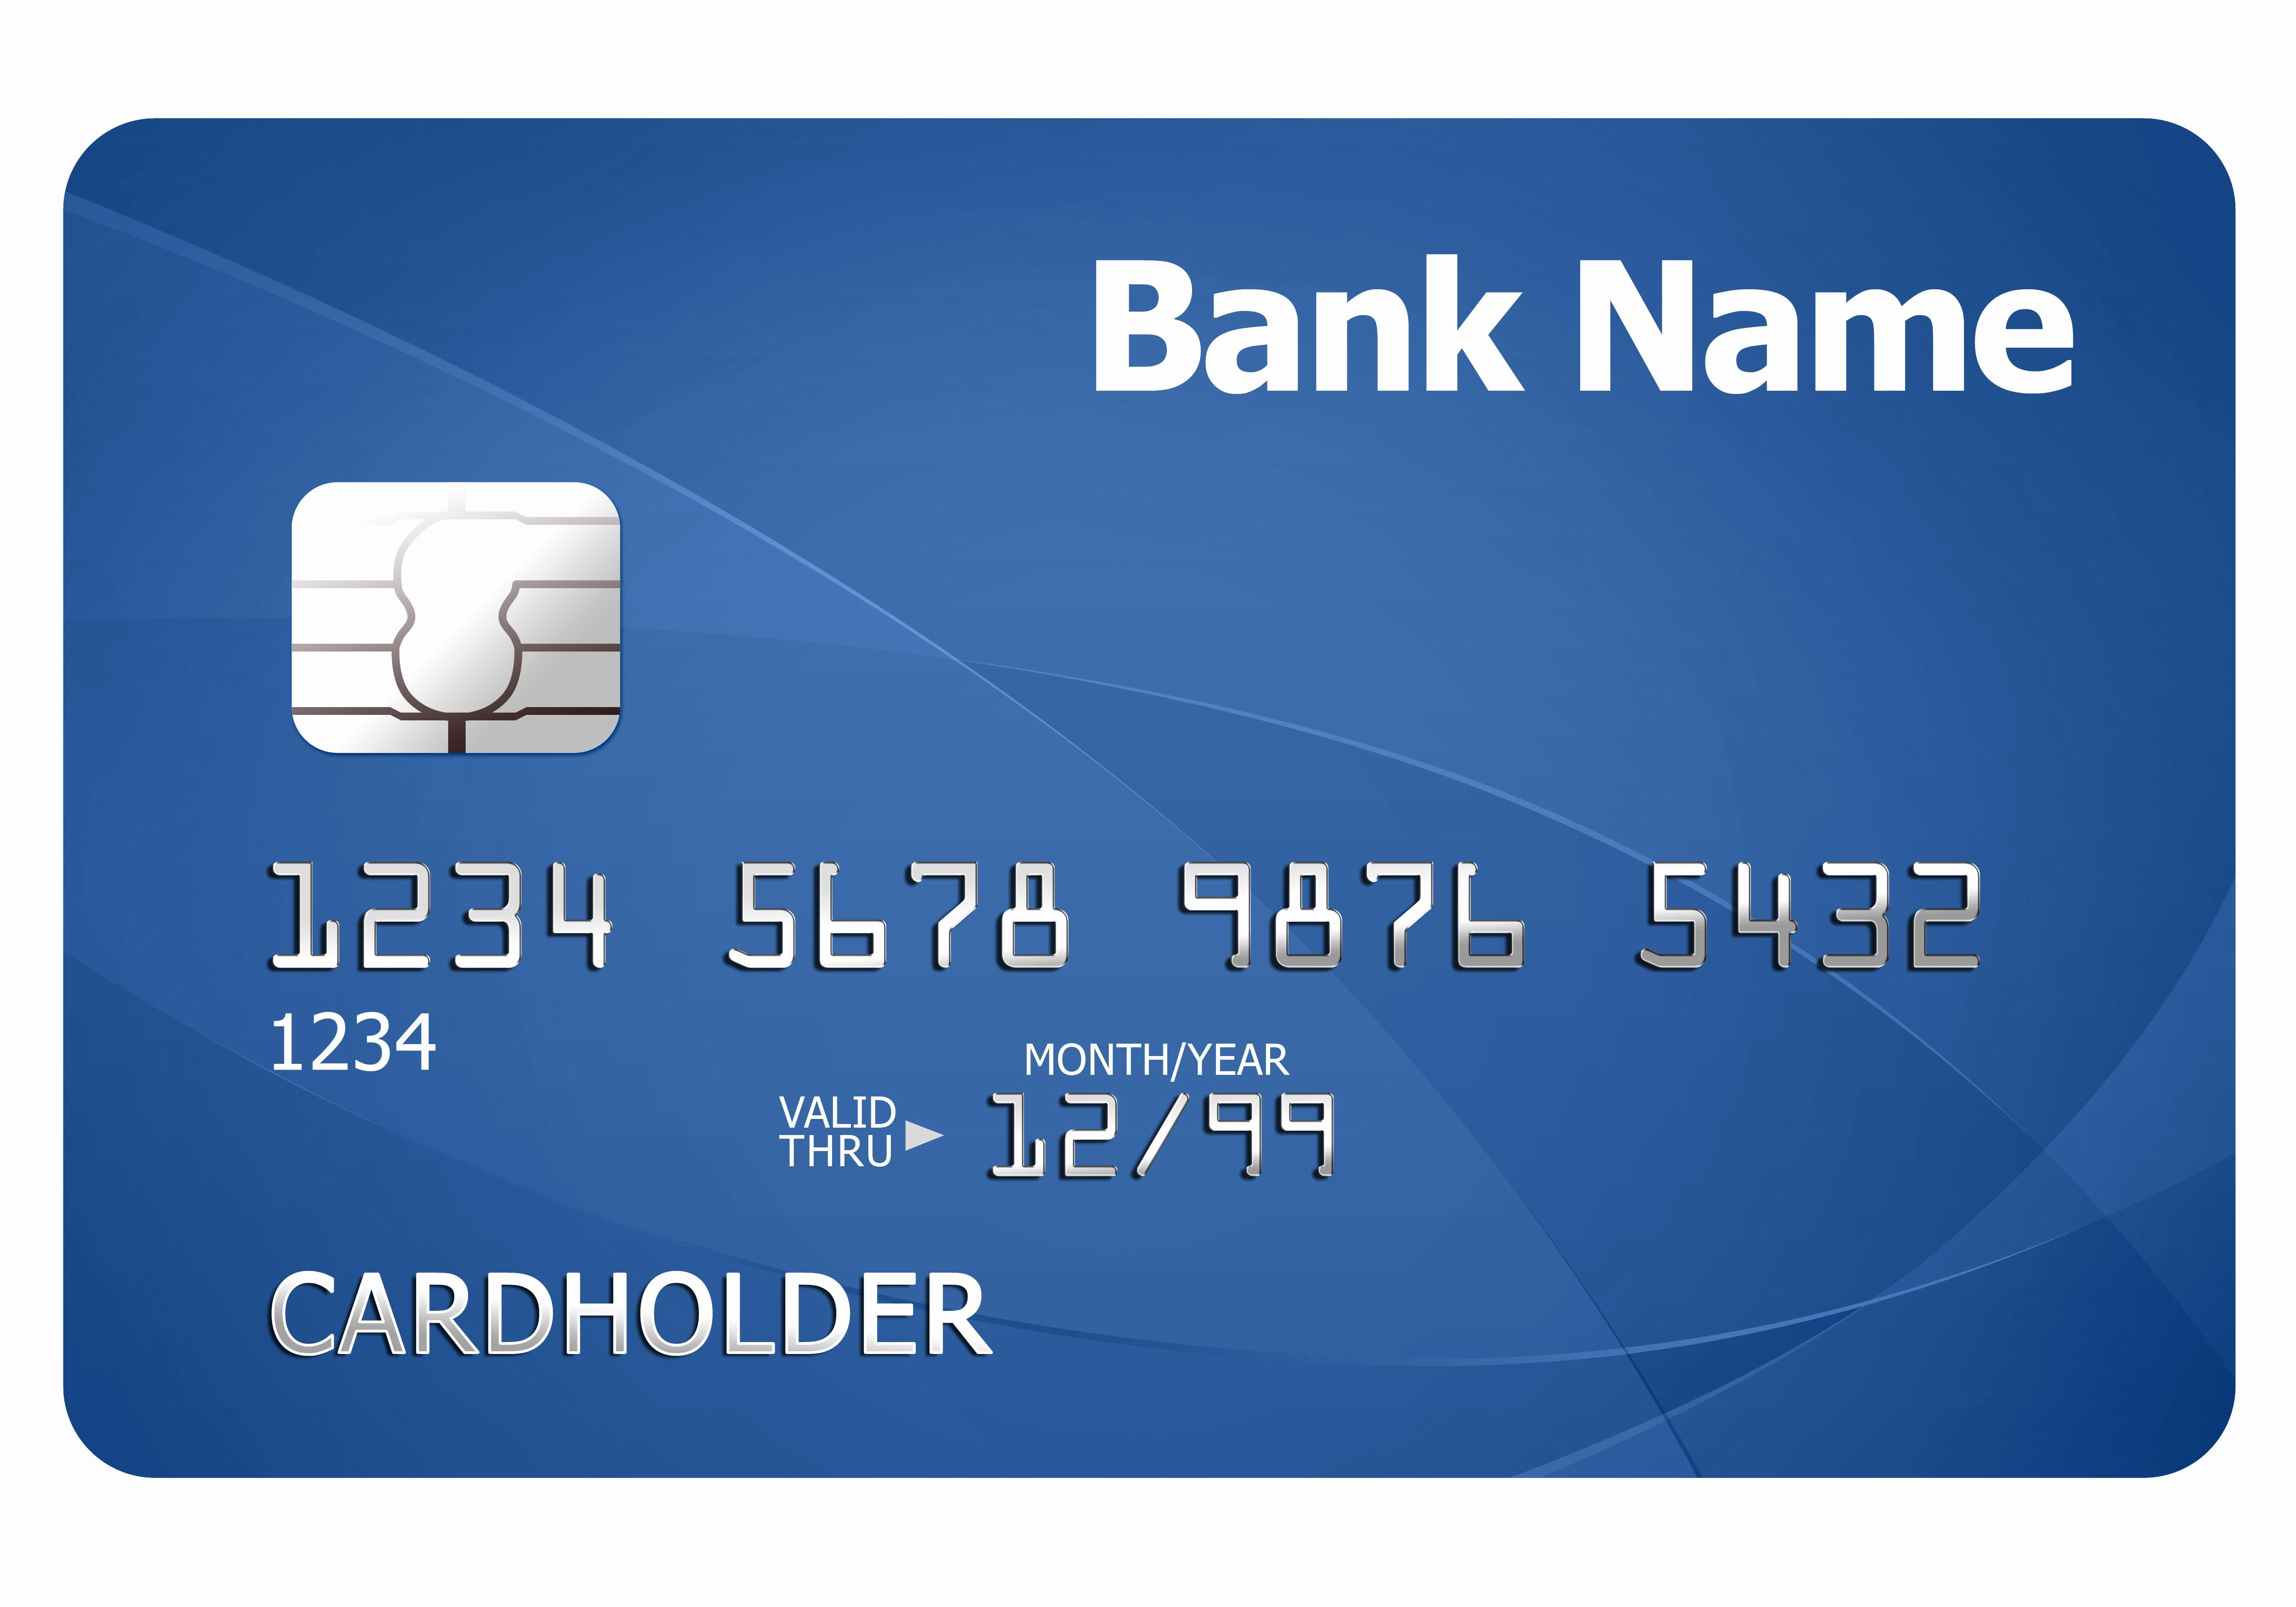 Blank Credit Card Template In 2020 Debit Card Design Virtual Credit Card Card Template